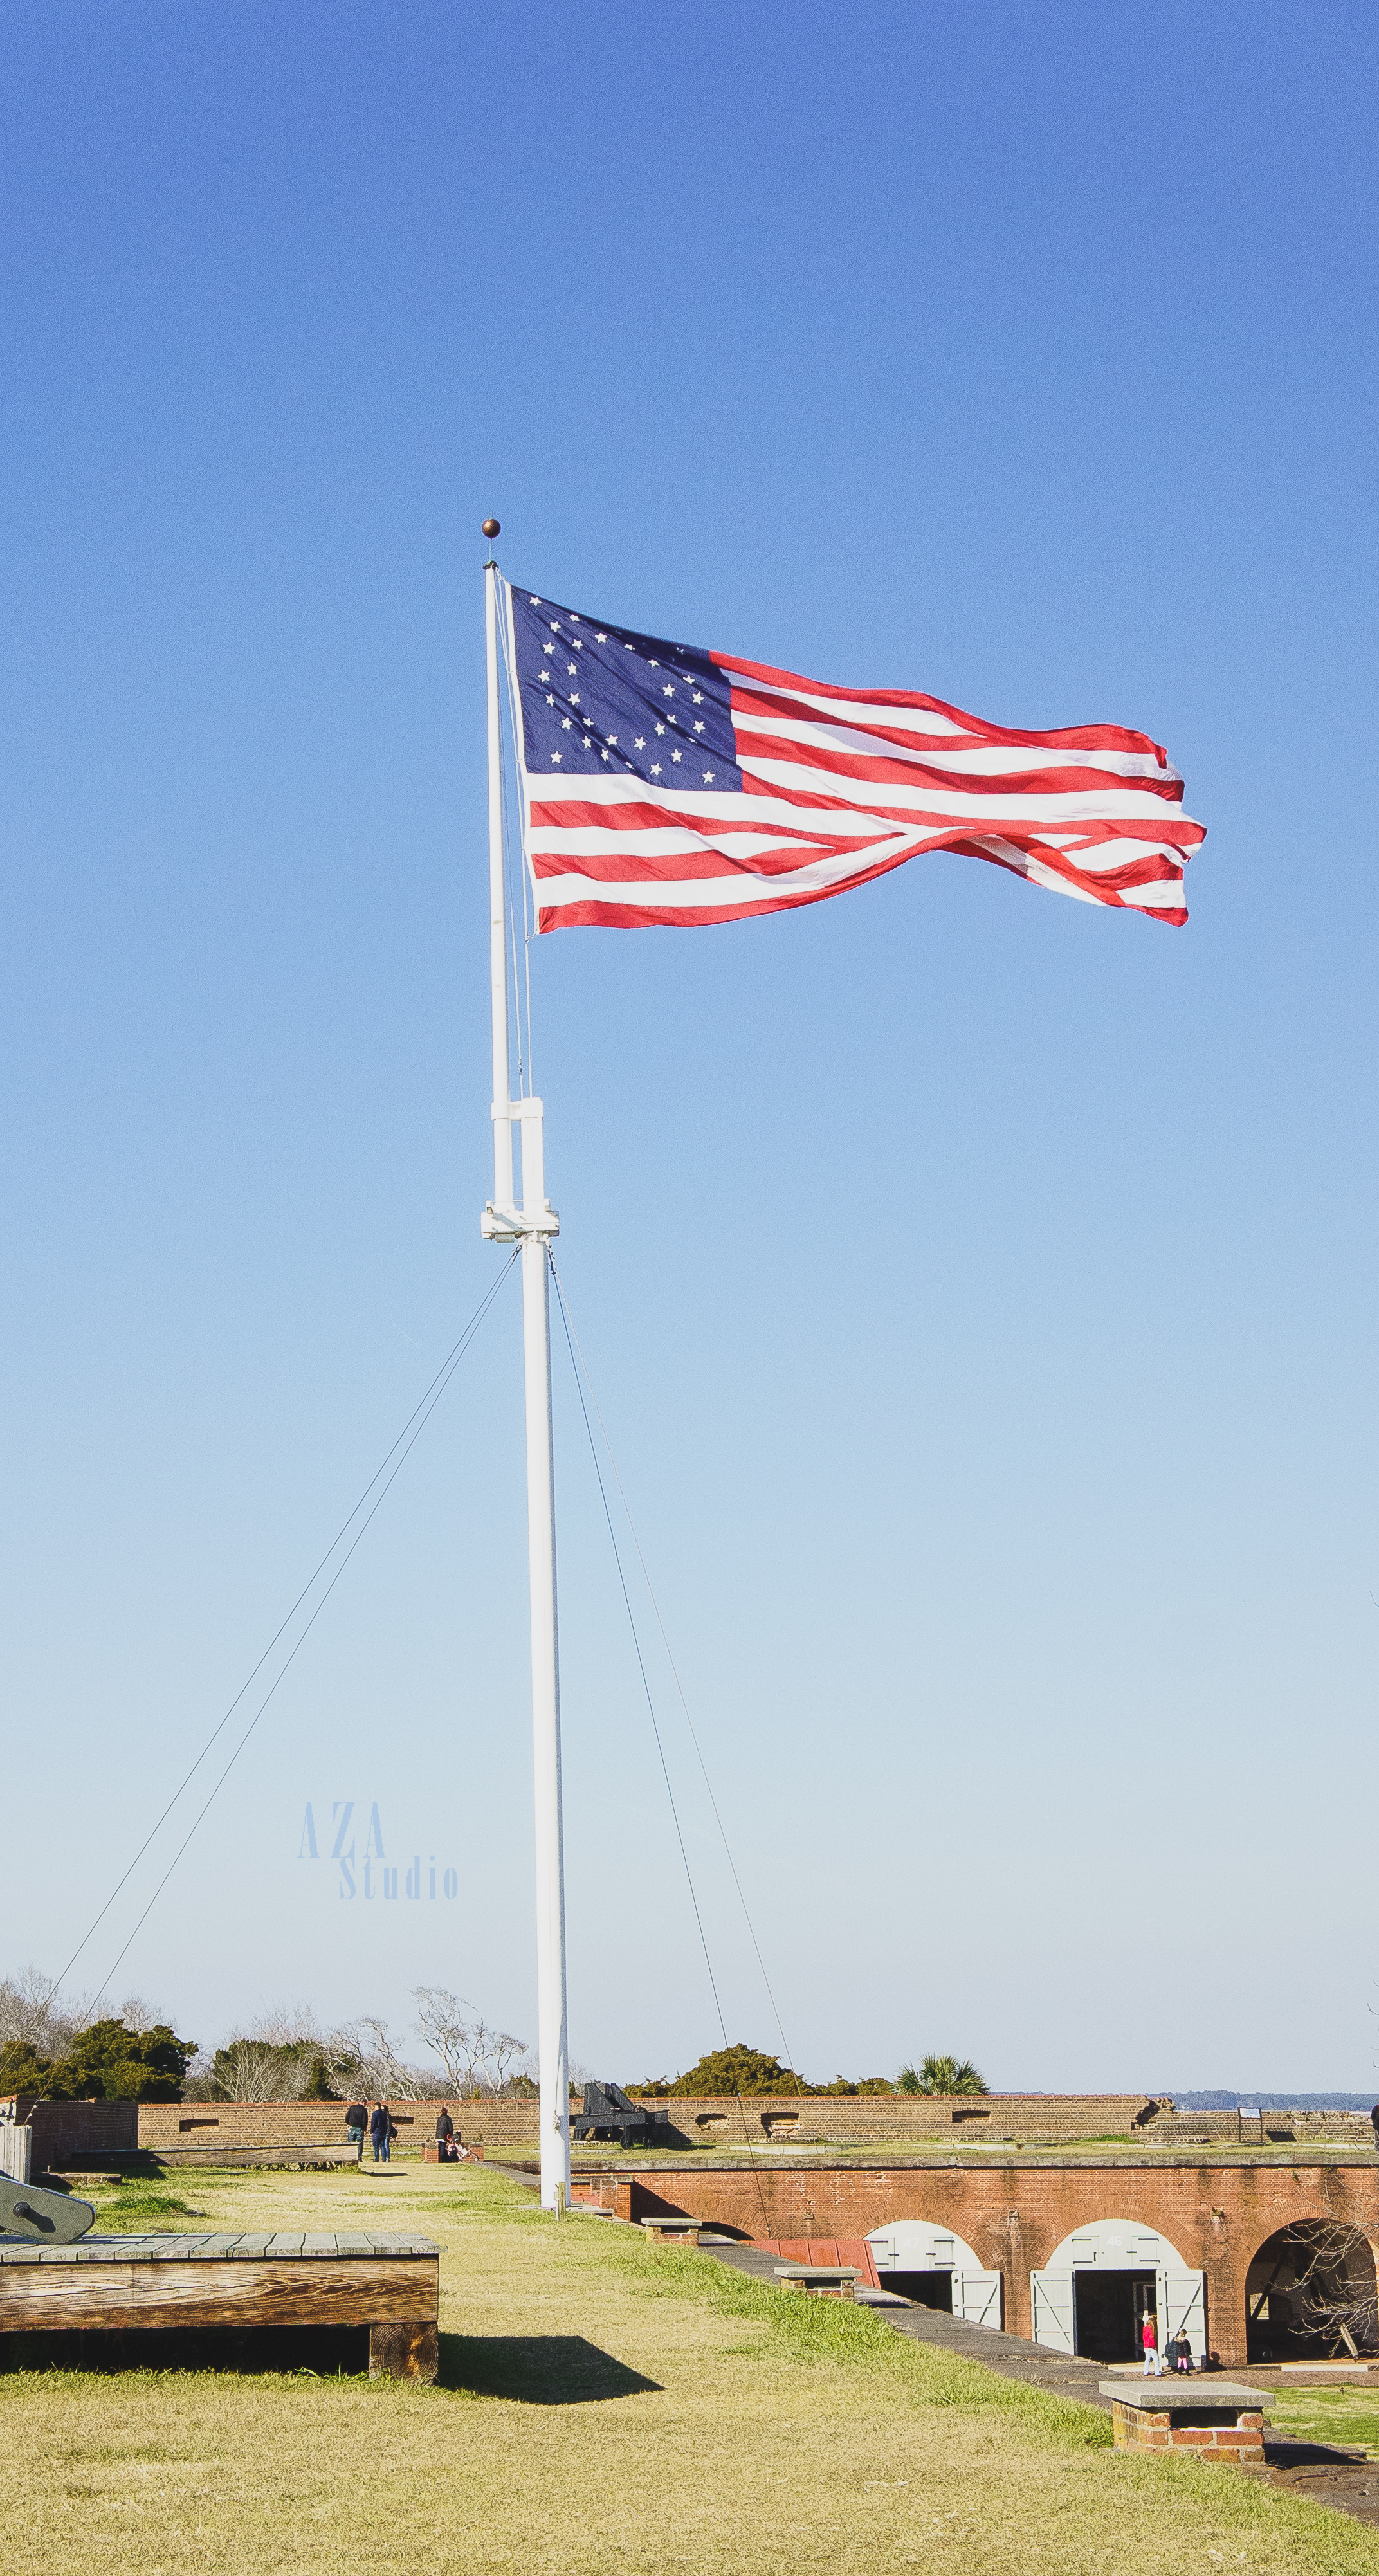 I love flags. I can't help but stop and take a picture.